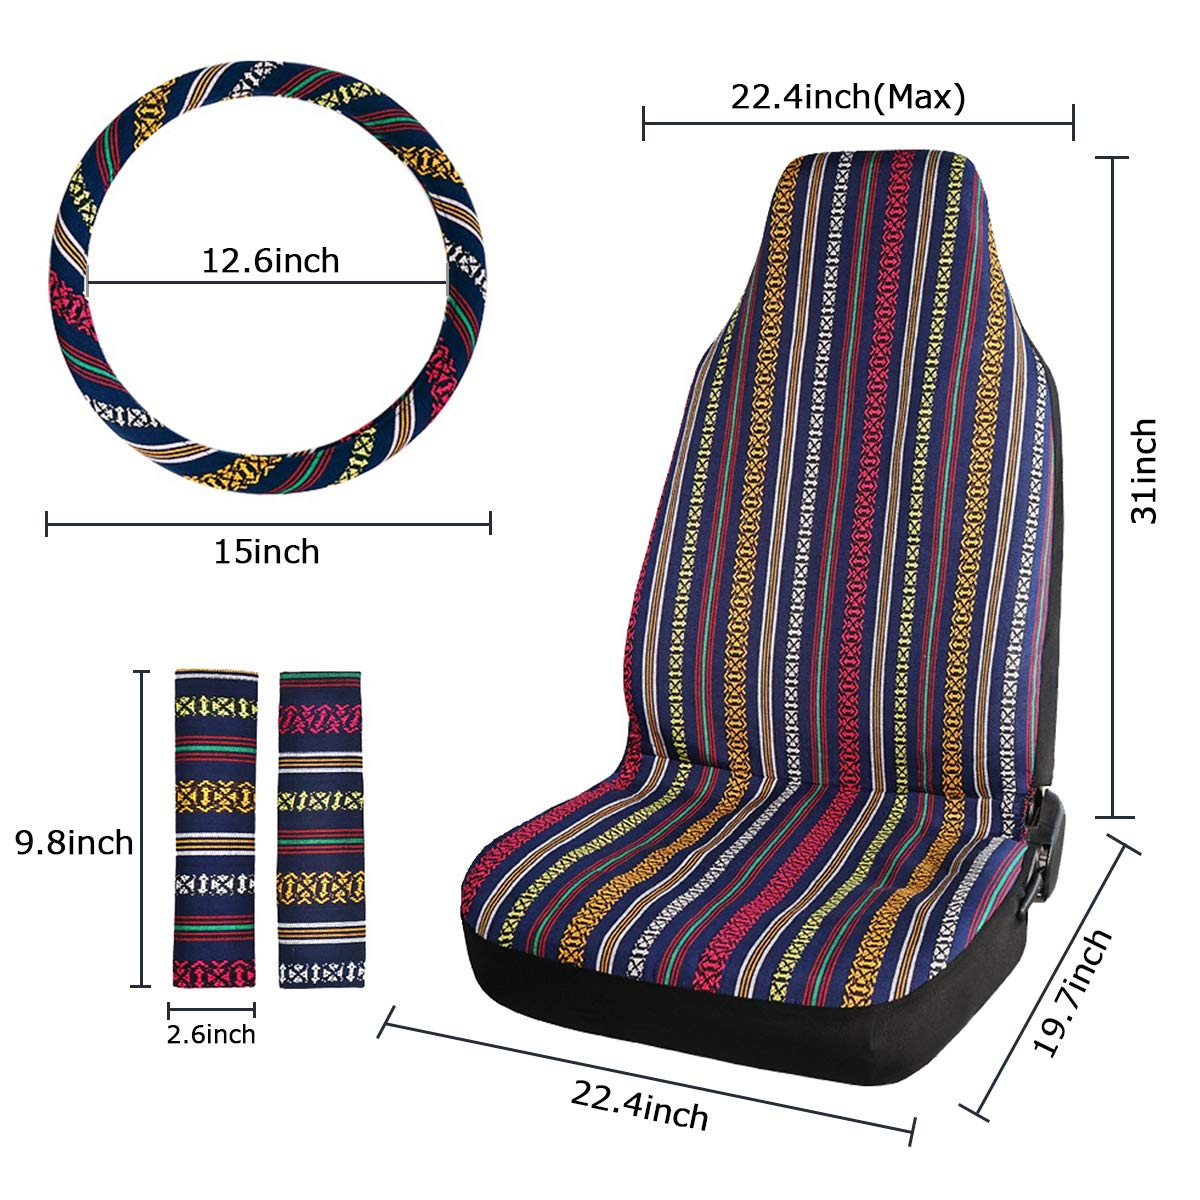 INFANZIA Baja Front Seat Covers Saddle Blanket Auto Seat Cover with Seat Belt Covers Fit Car Truck Van SUV 4Pcs Blue